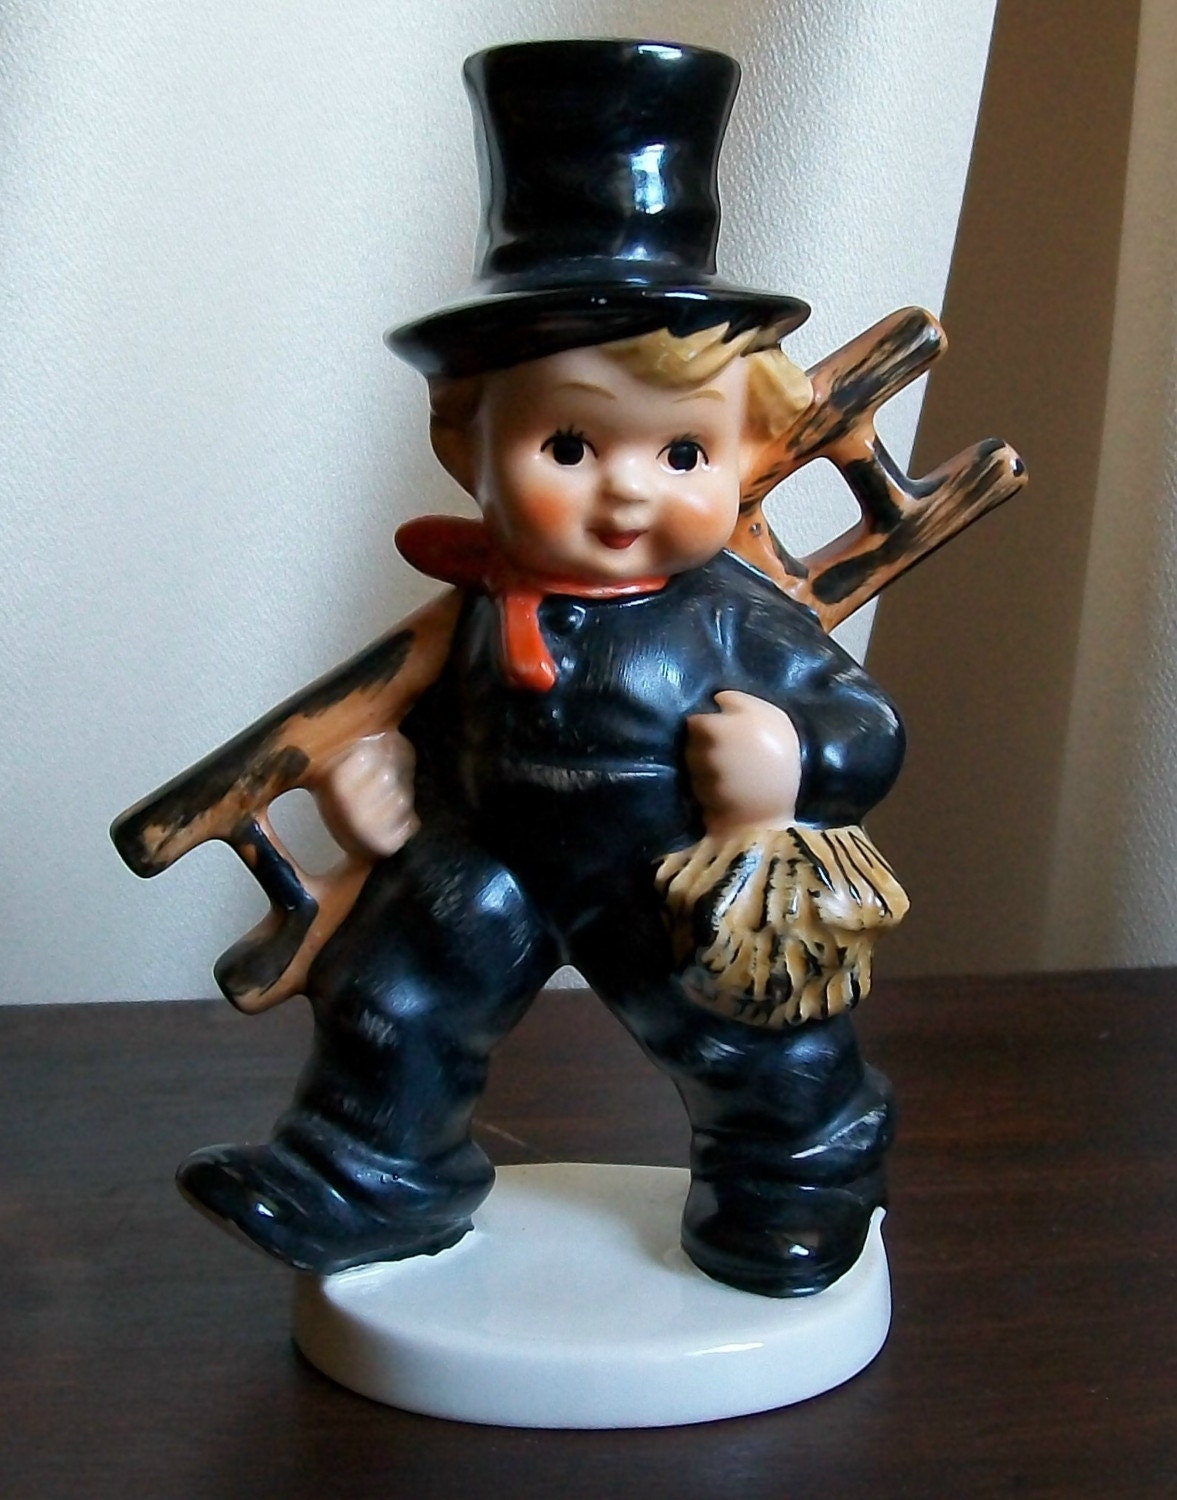 Vintage Hummel Chimney Sweep Figurine By Goebel By Susantique